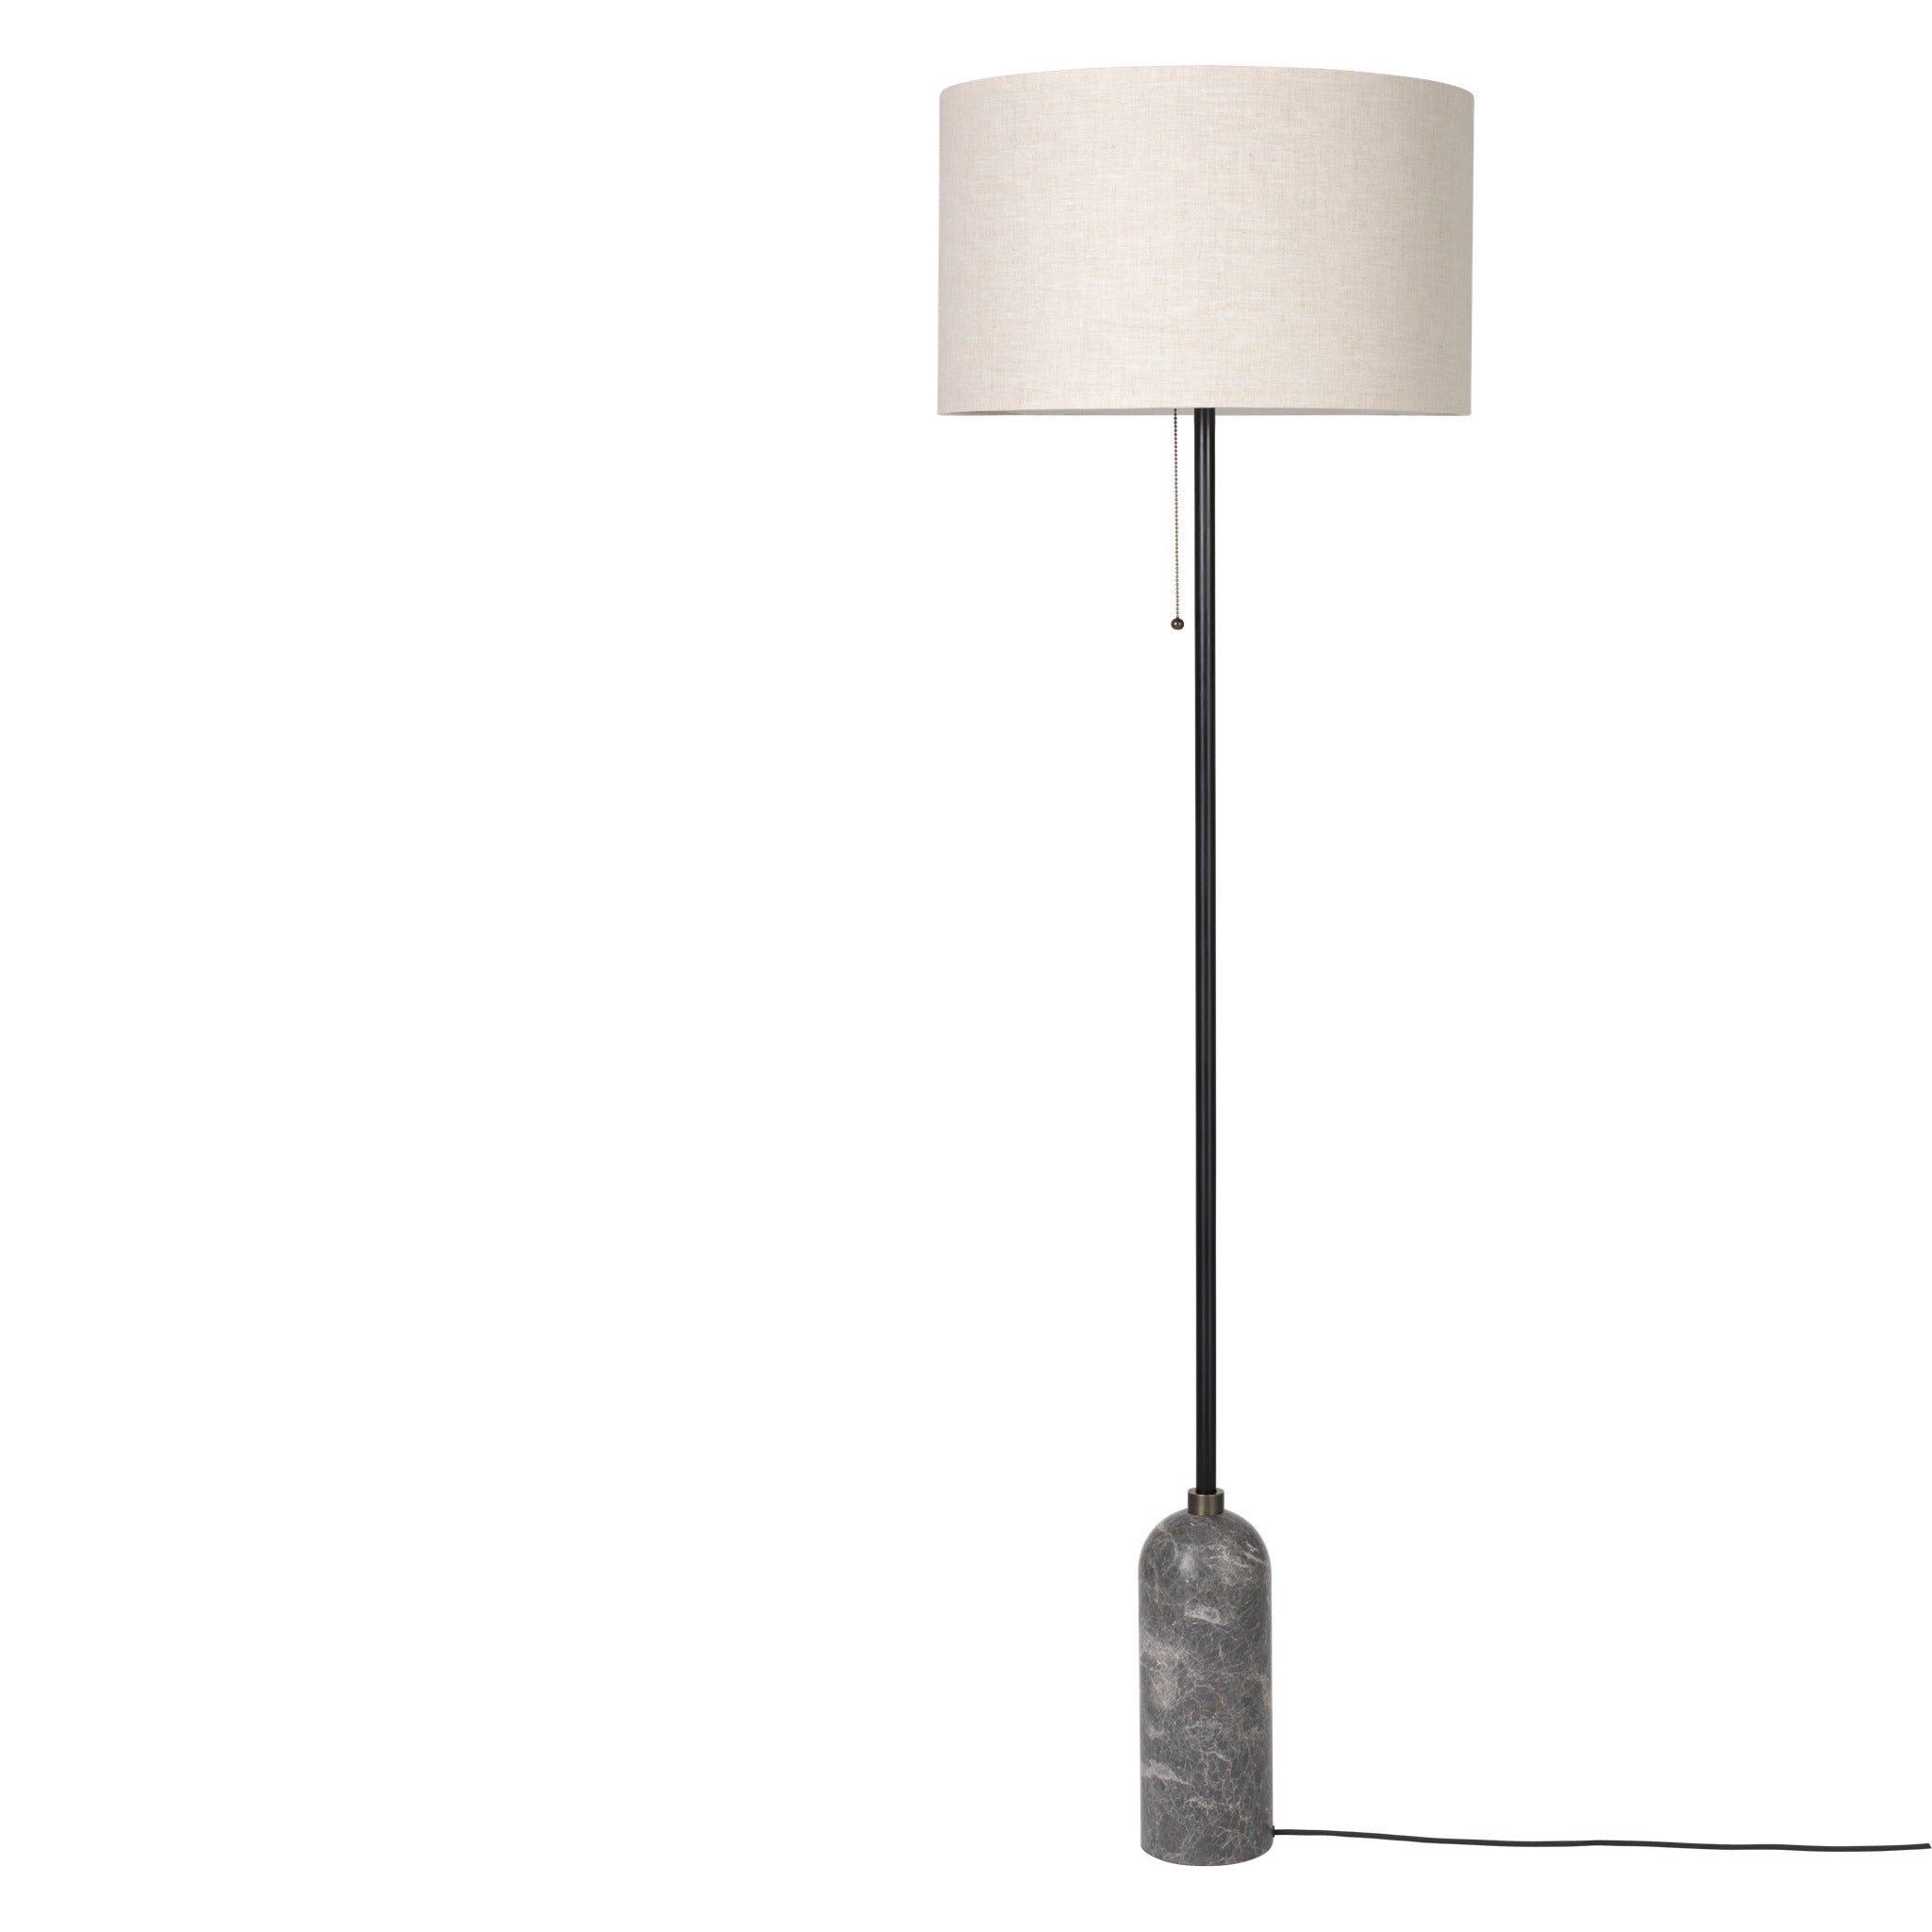 Gravity Table light by Gubi | SCP